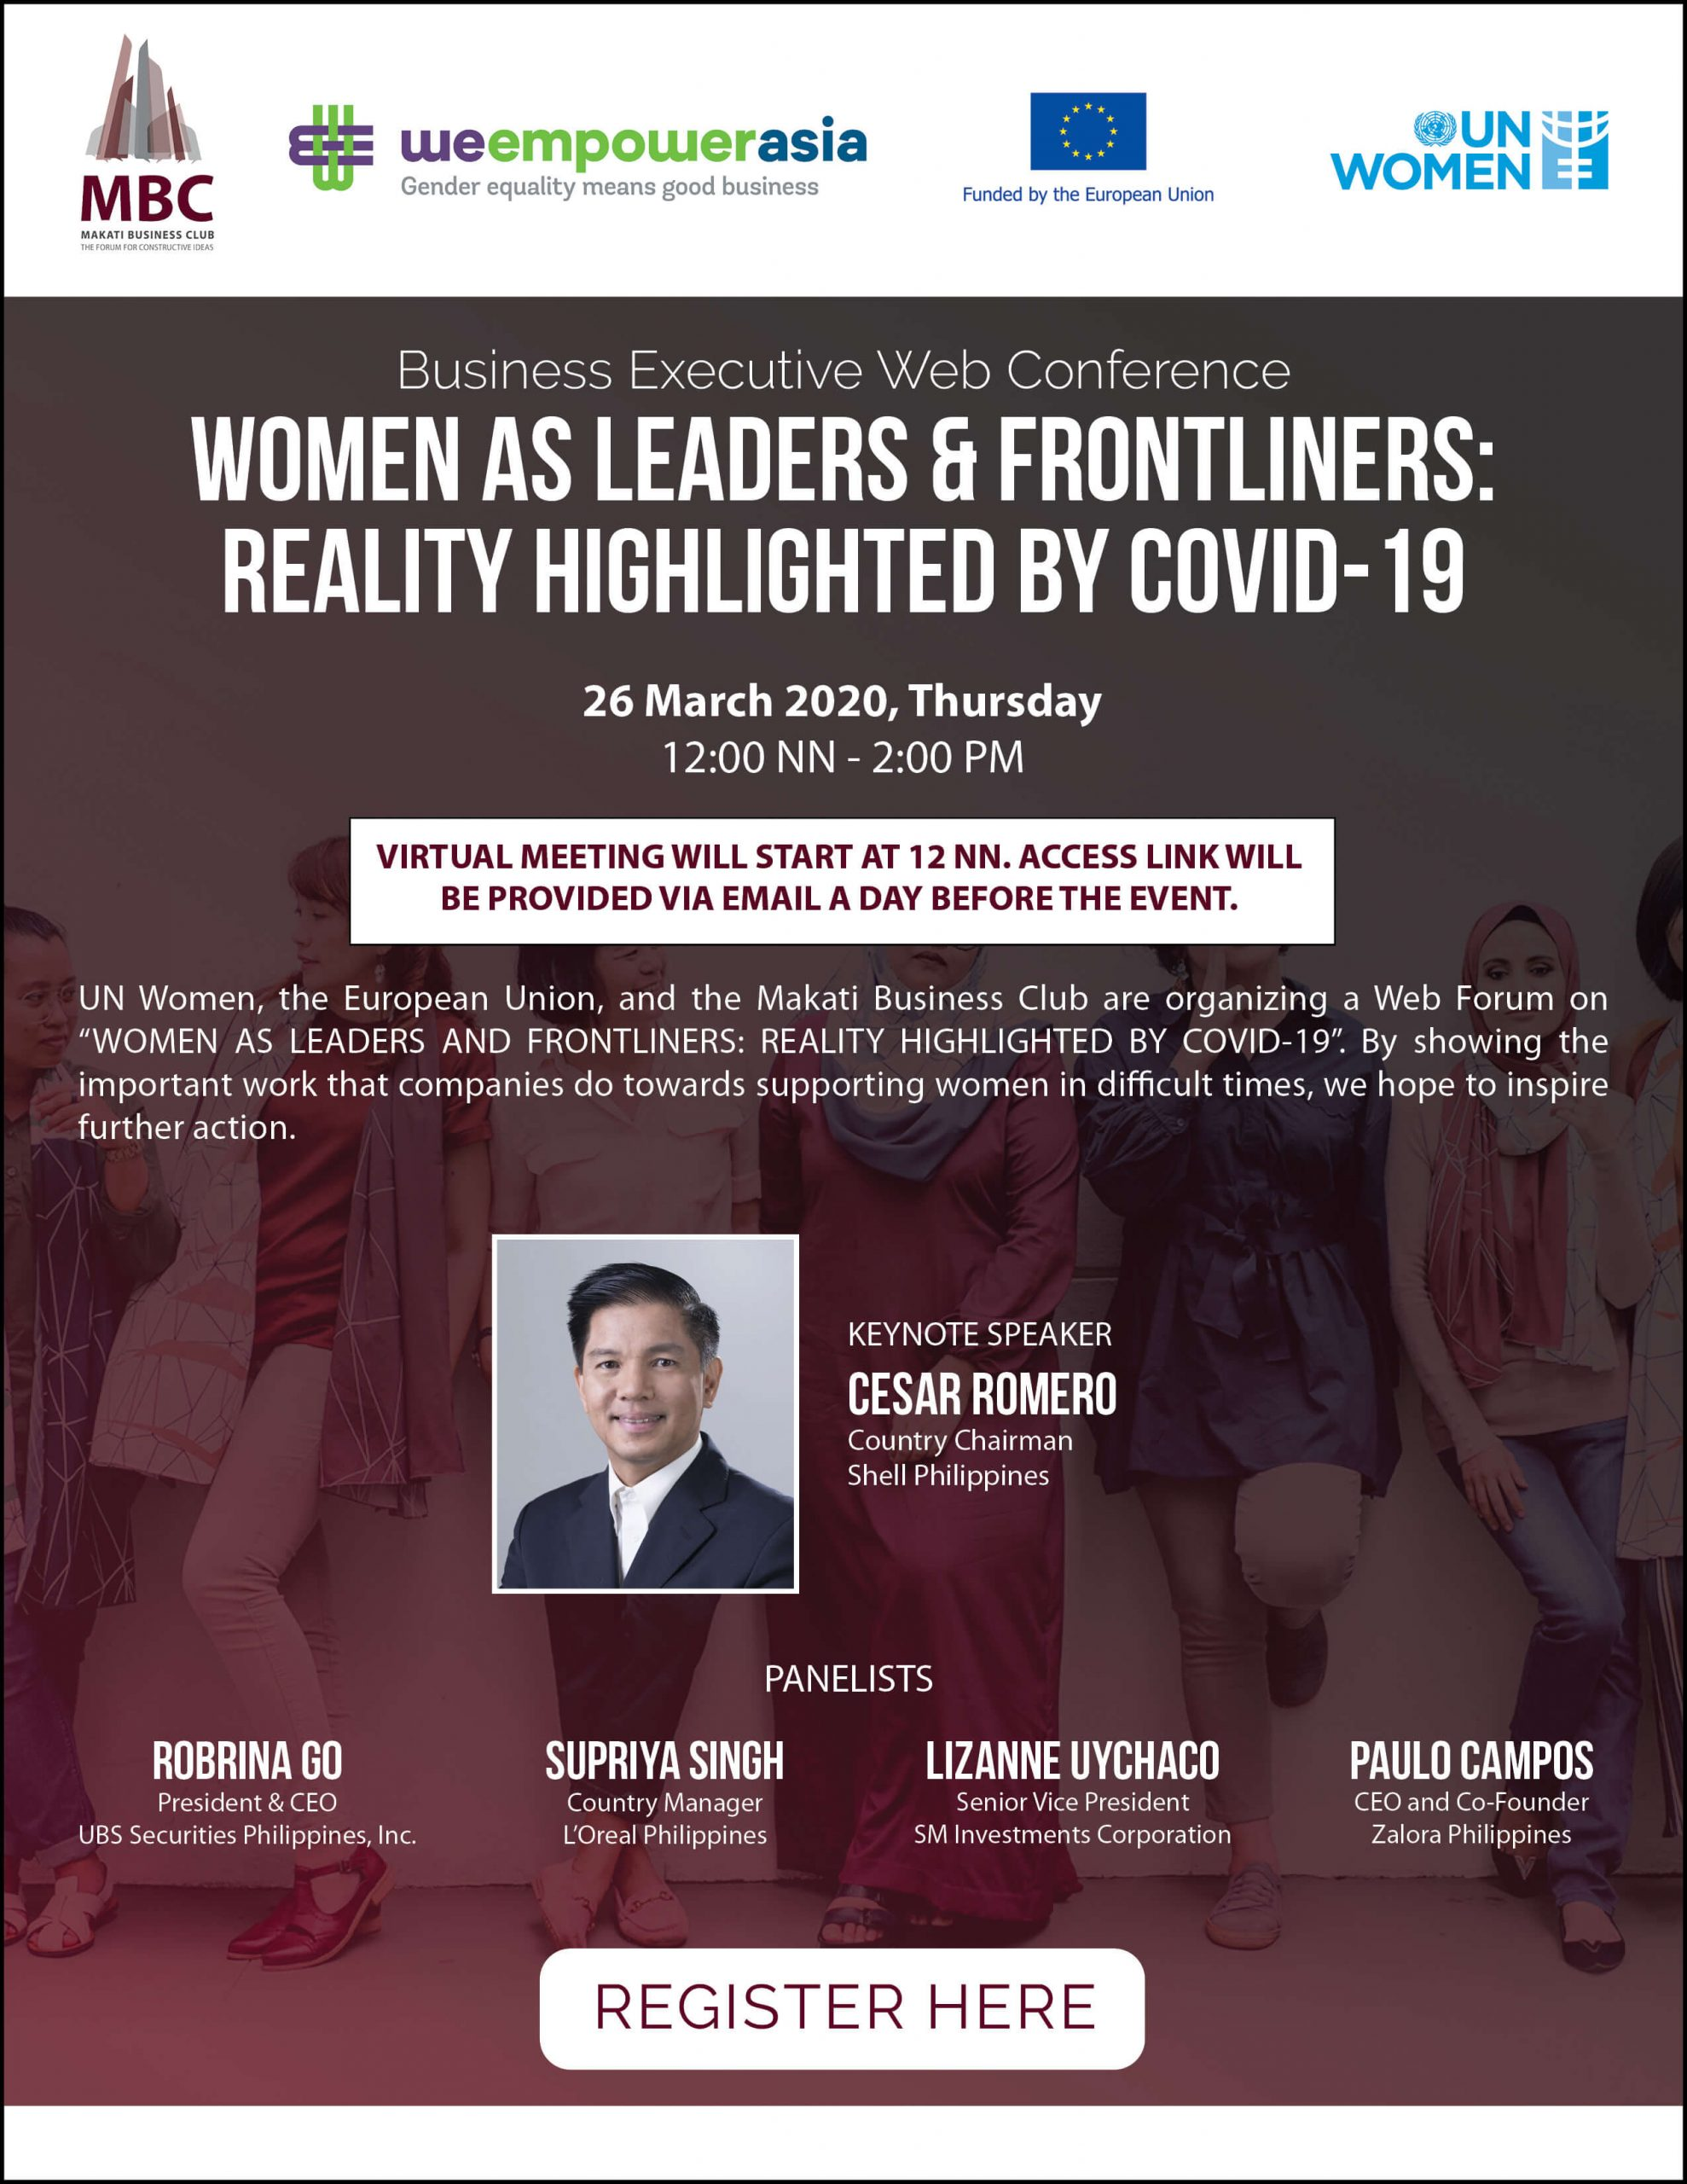 Women as Leaders & Frontliners: Reality Highlighted by COVID-19